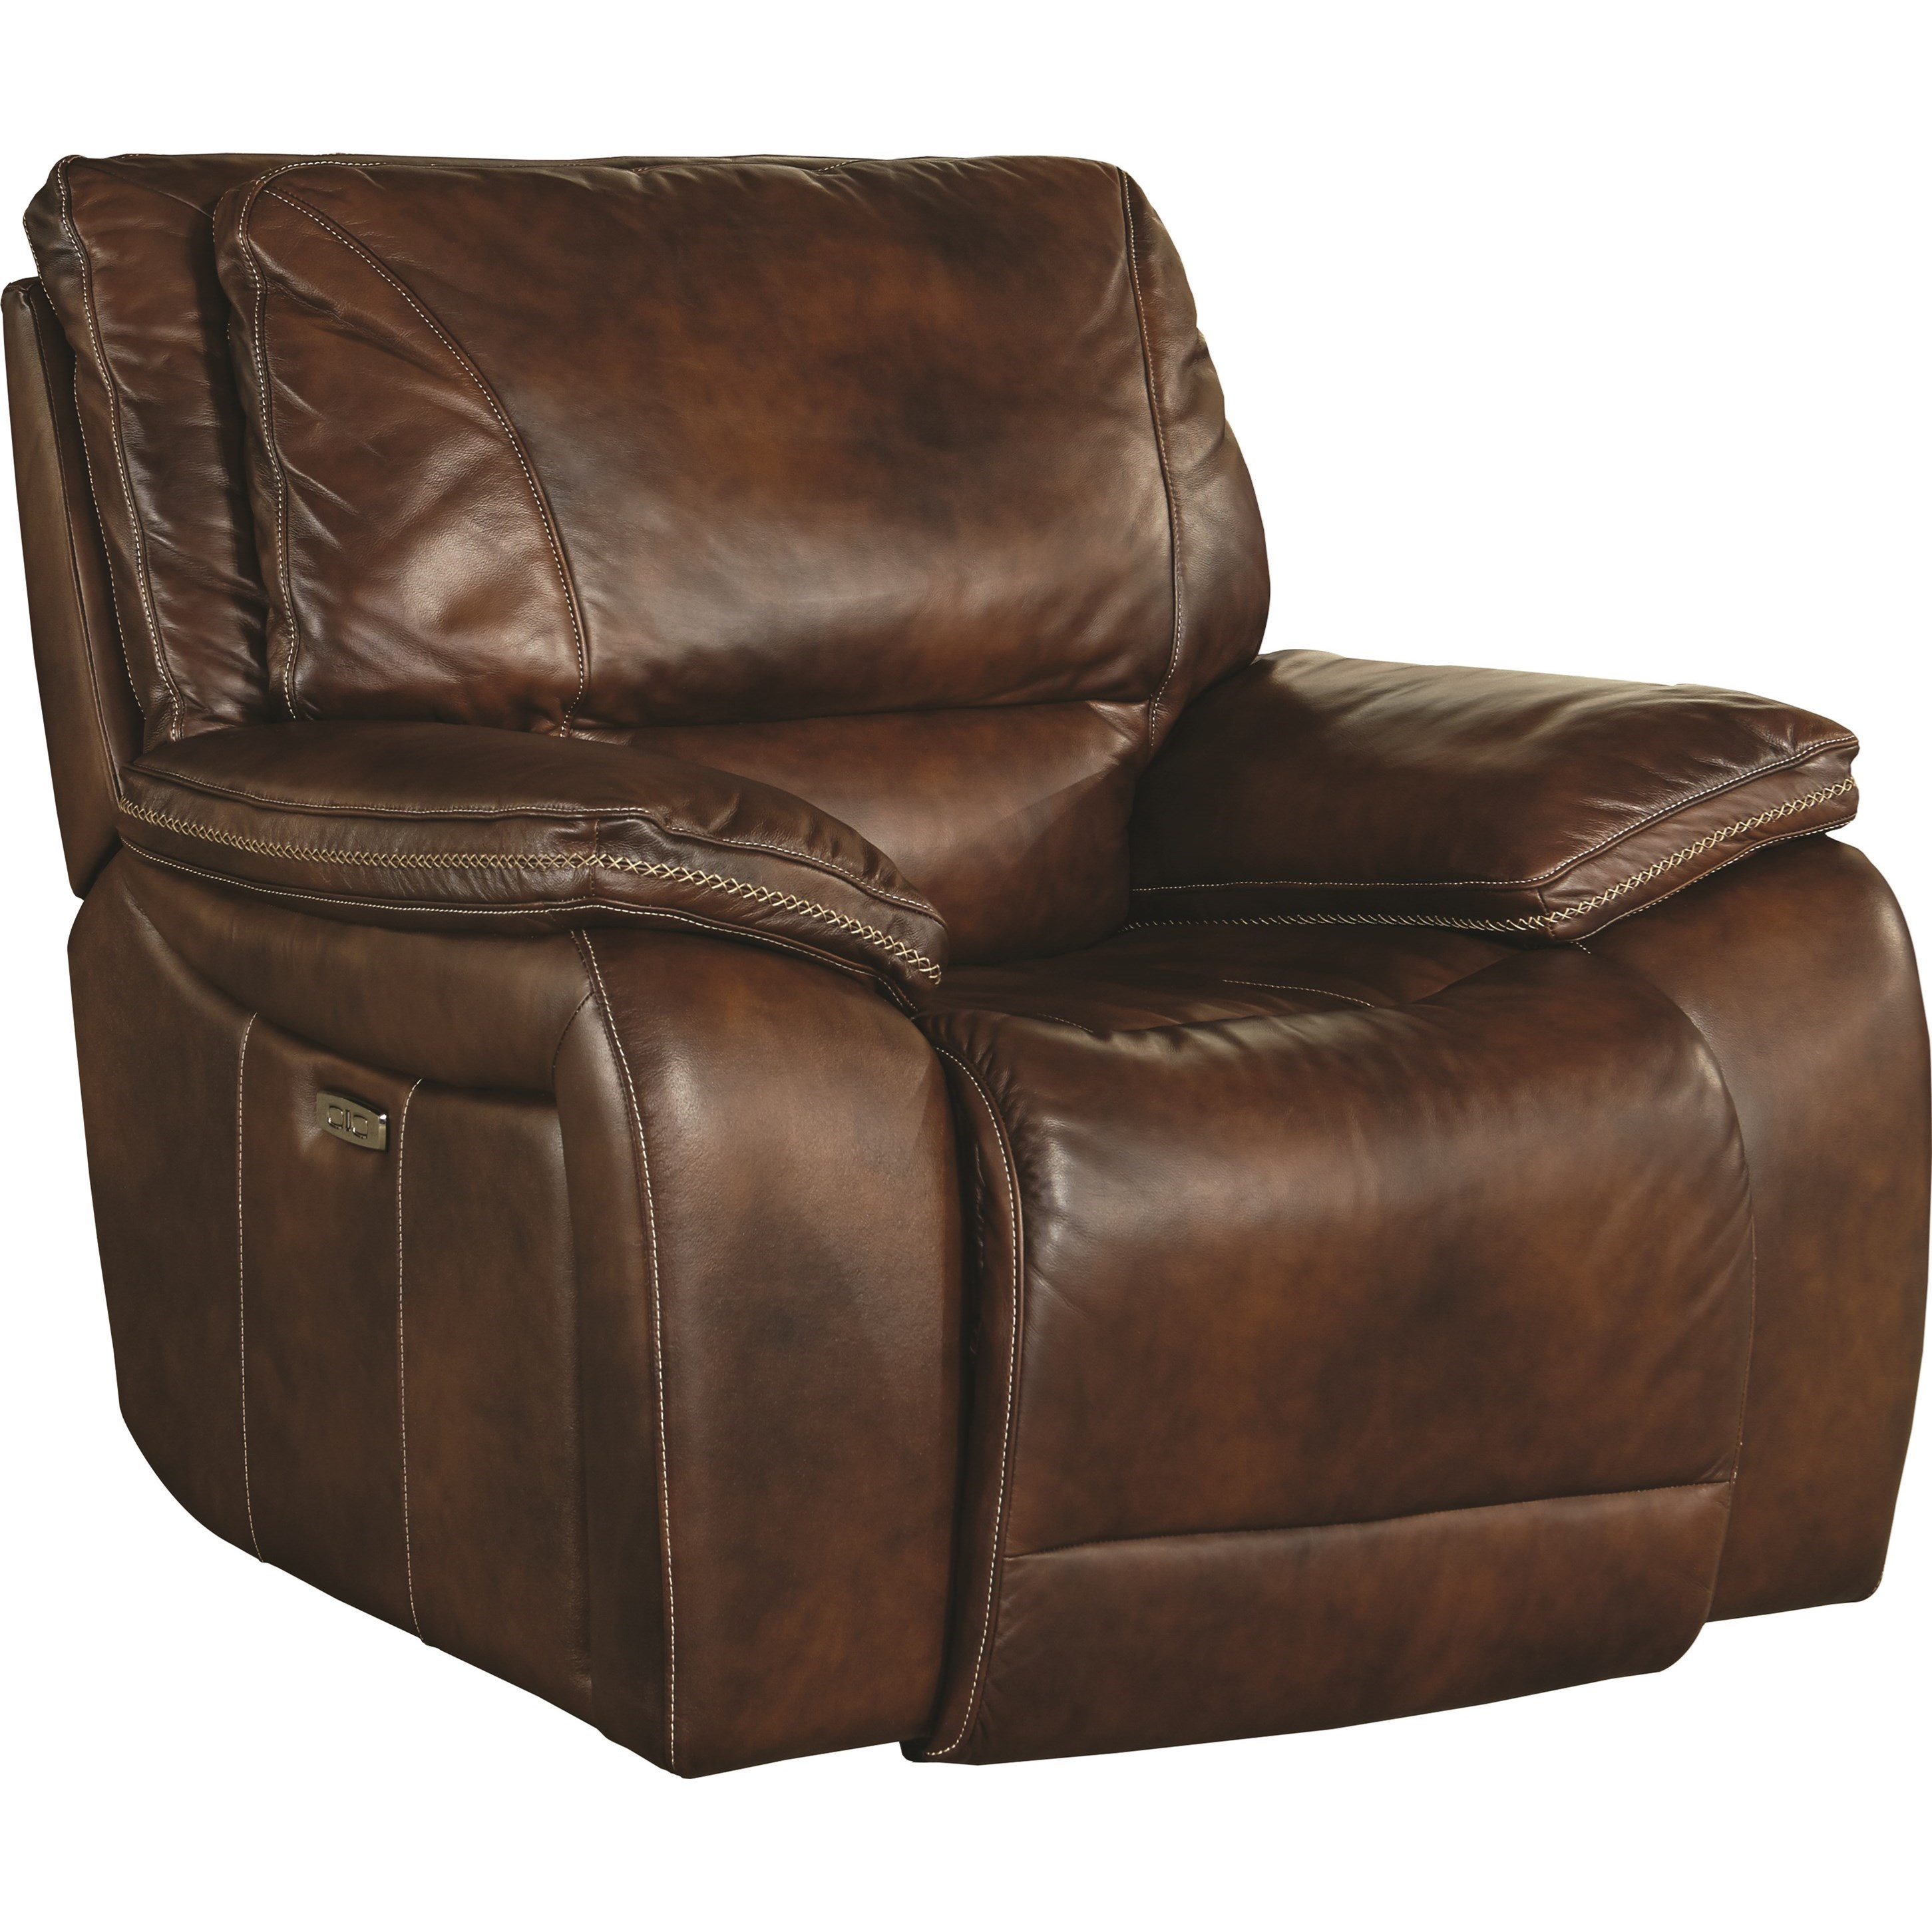 Vail Power Recliner by Parker Living at Miller Waldrop Furniture and Decor